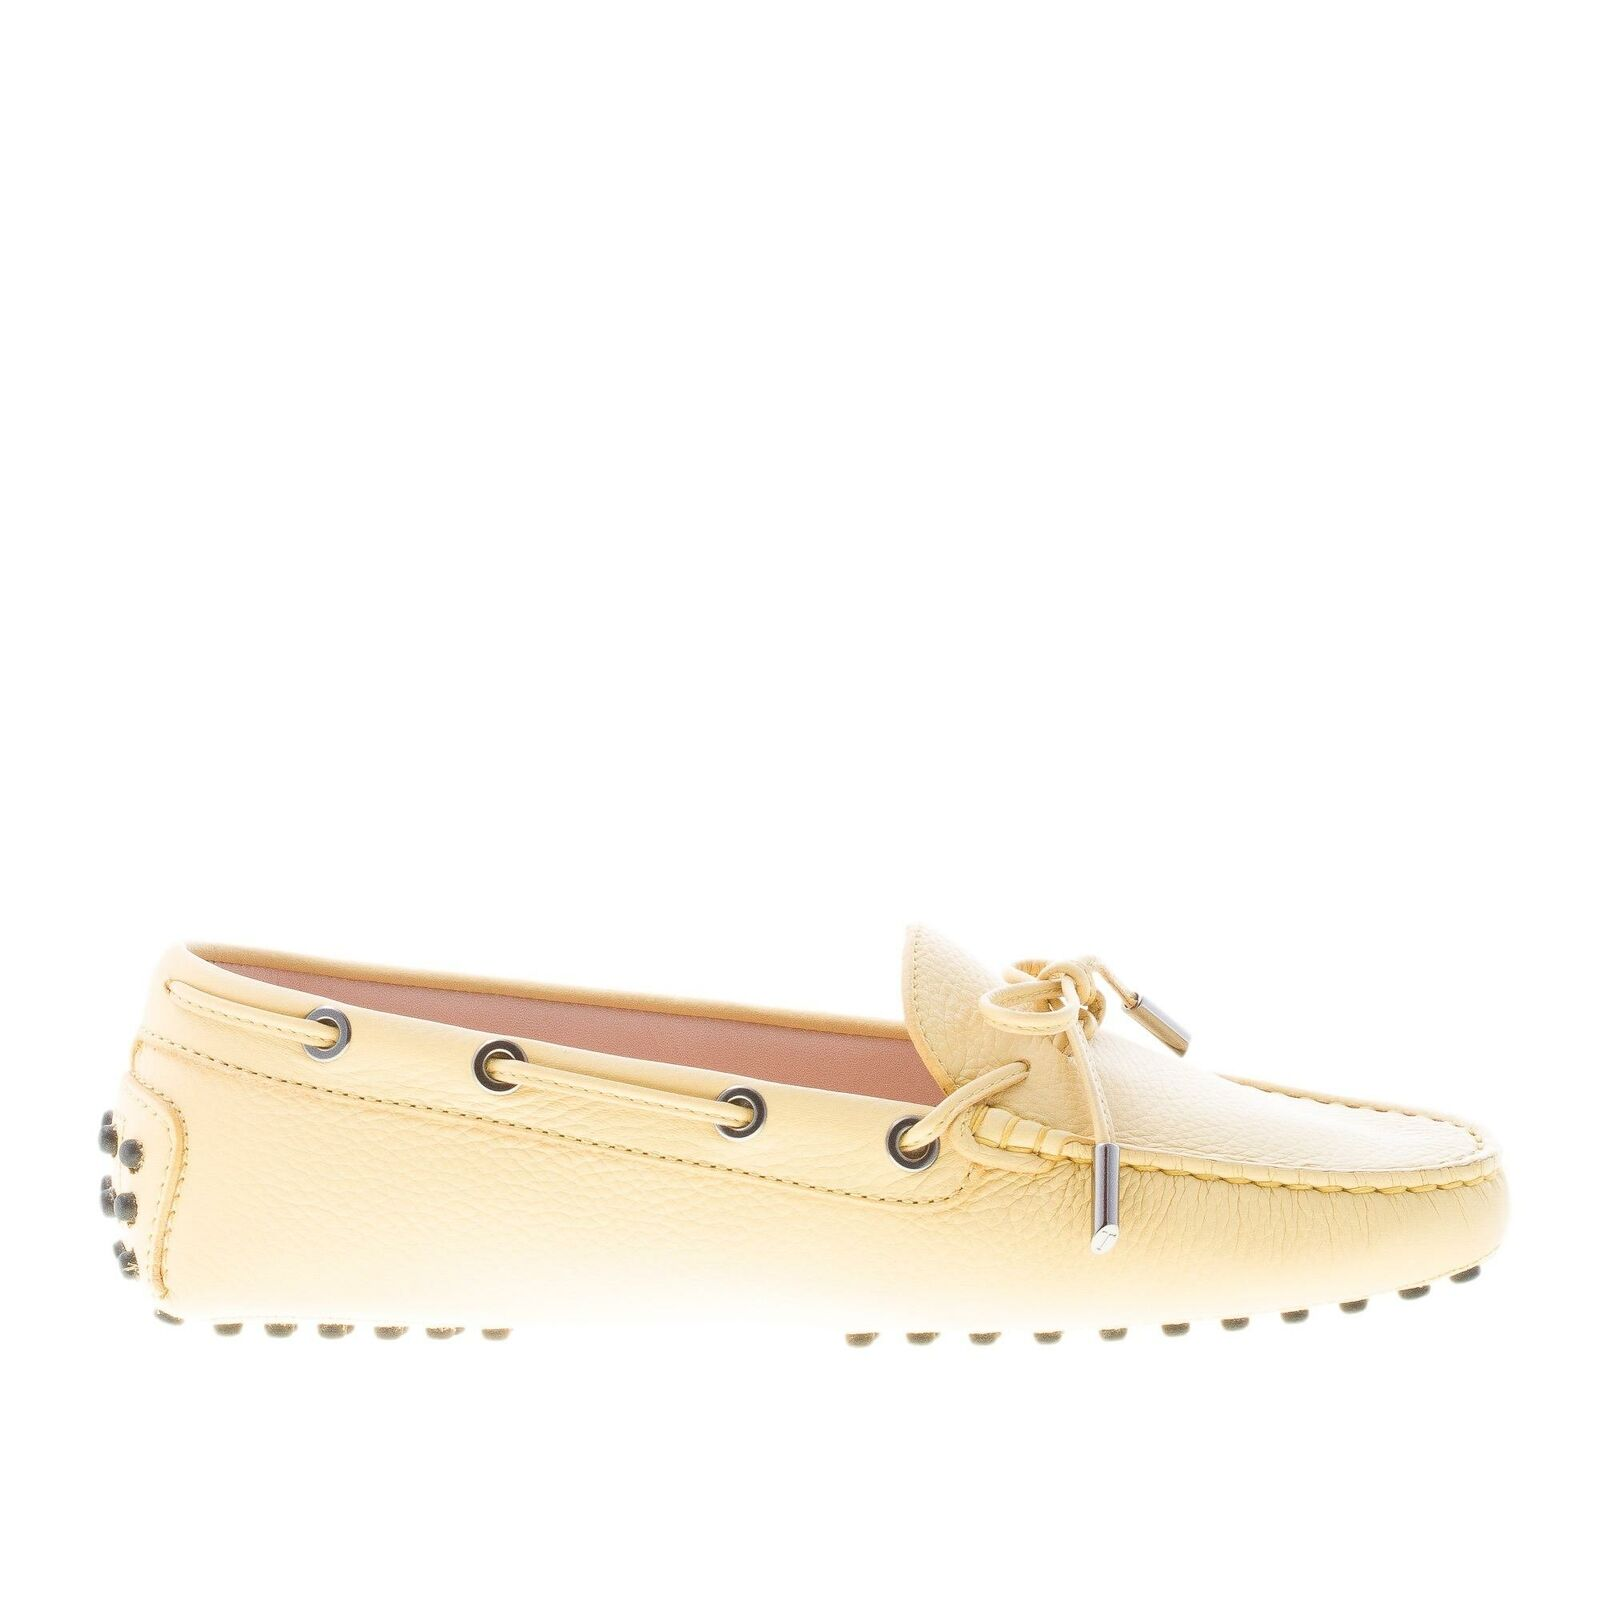 TOD'S TOD'S TOD'S damen schuhe shoes yellow hammered leder tie front gommino mokassins 662020